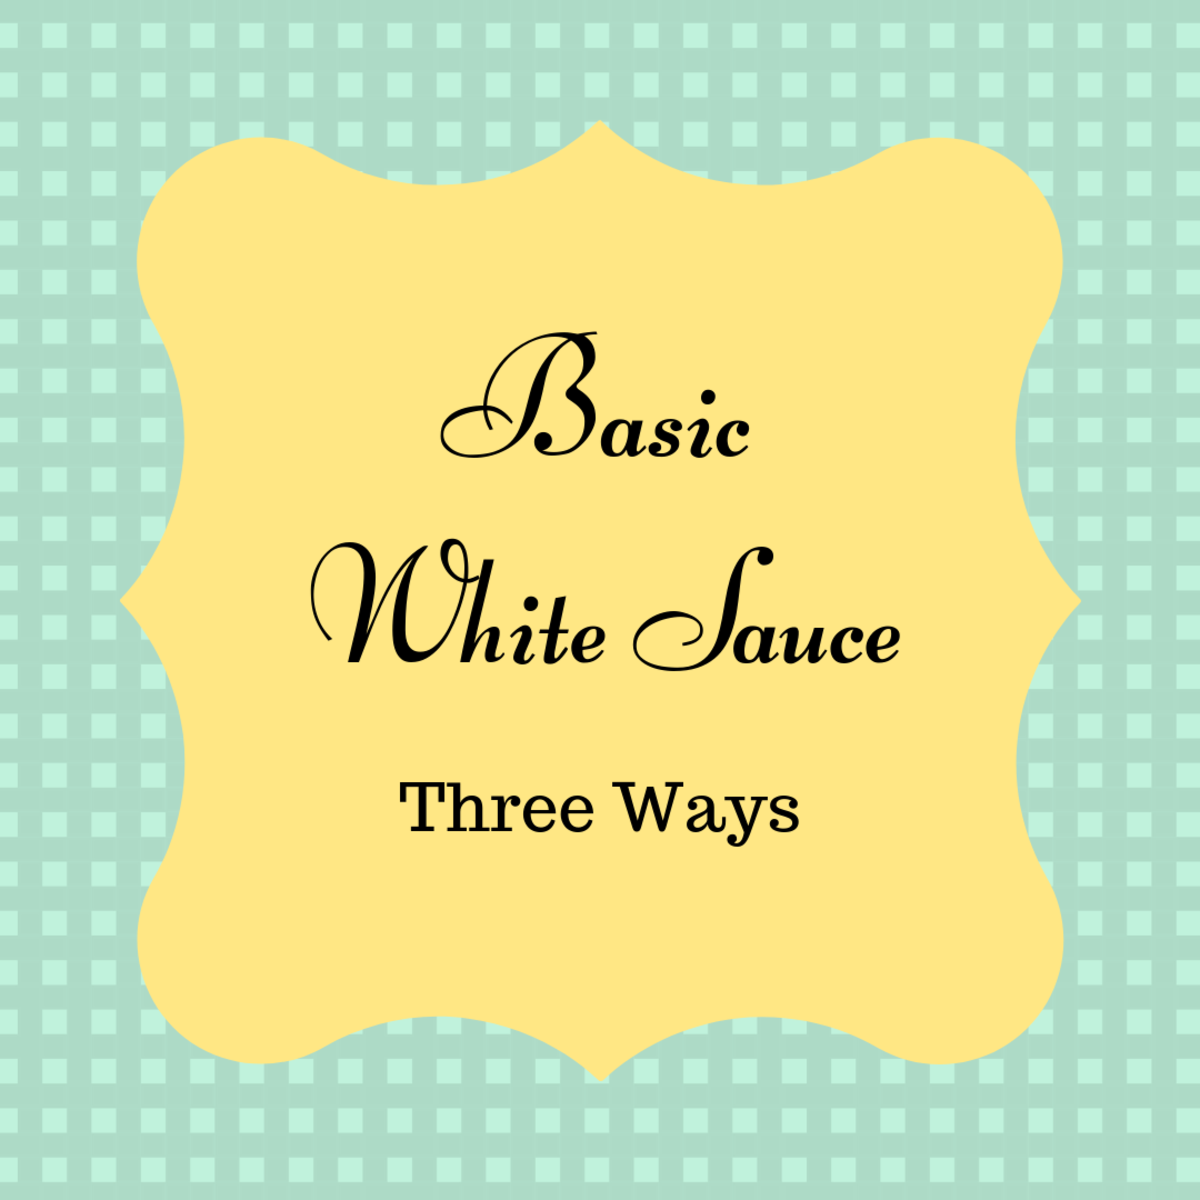 Knowing how to make a basic white sauce is a must!